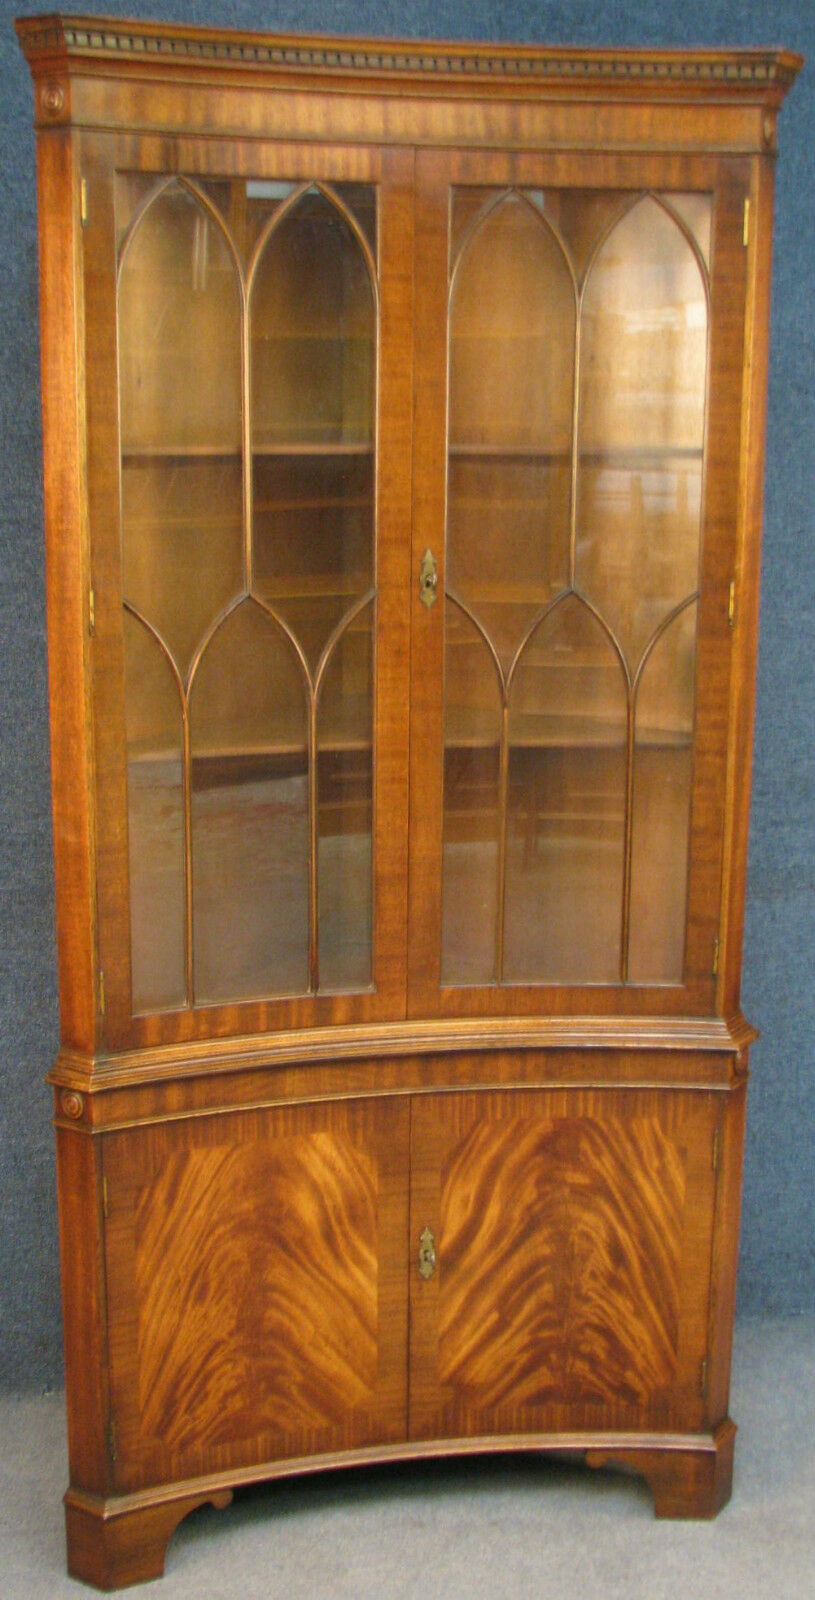 Reprodux Bevan Funnell Flame Mahogany Concave Corner Cabinet On Cupboard